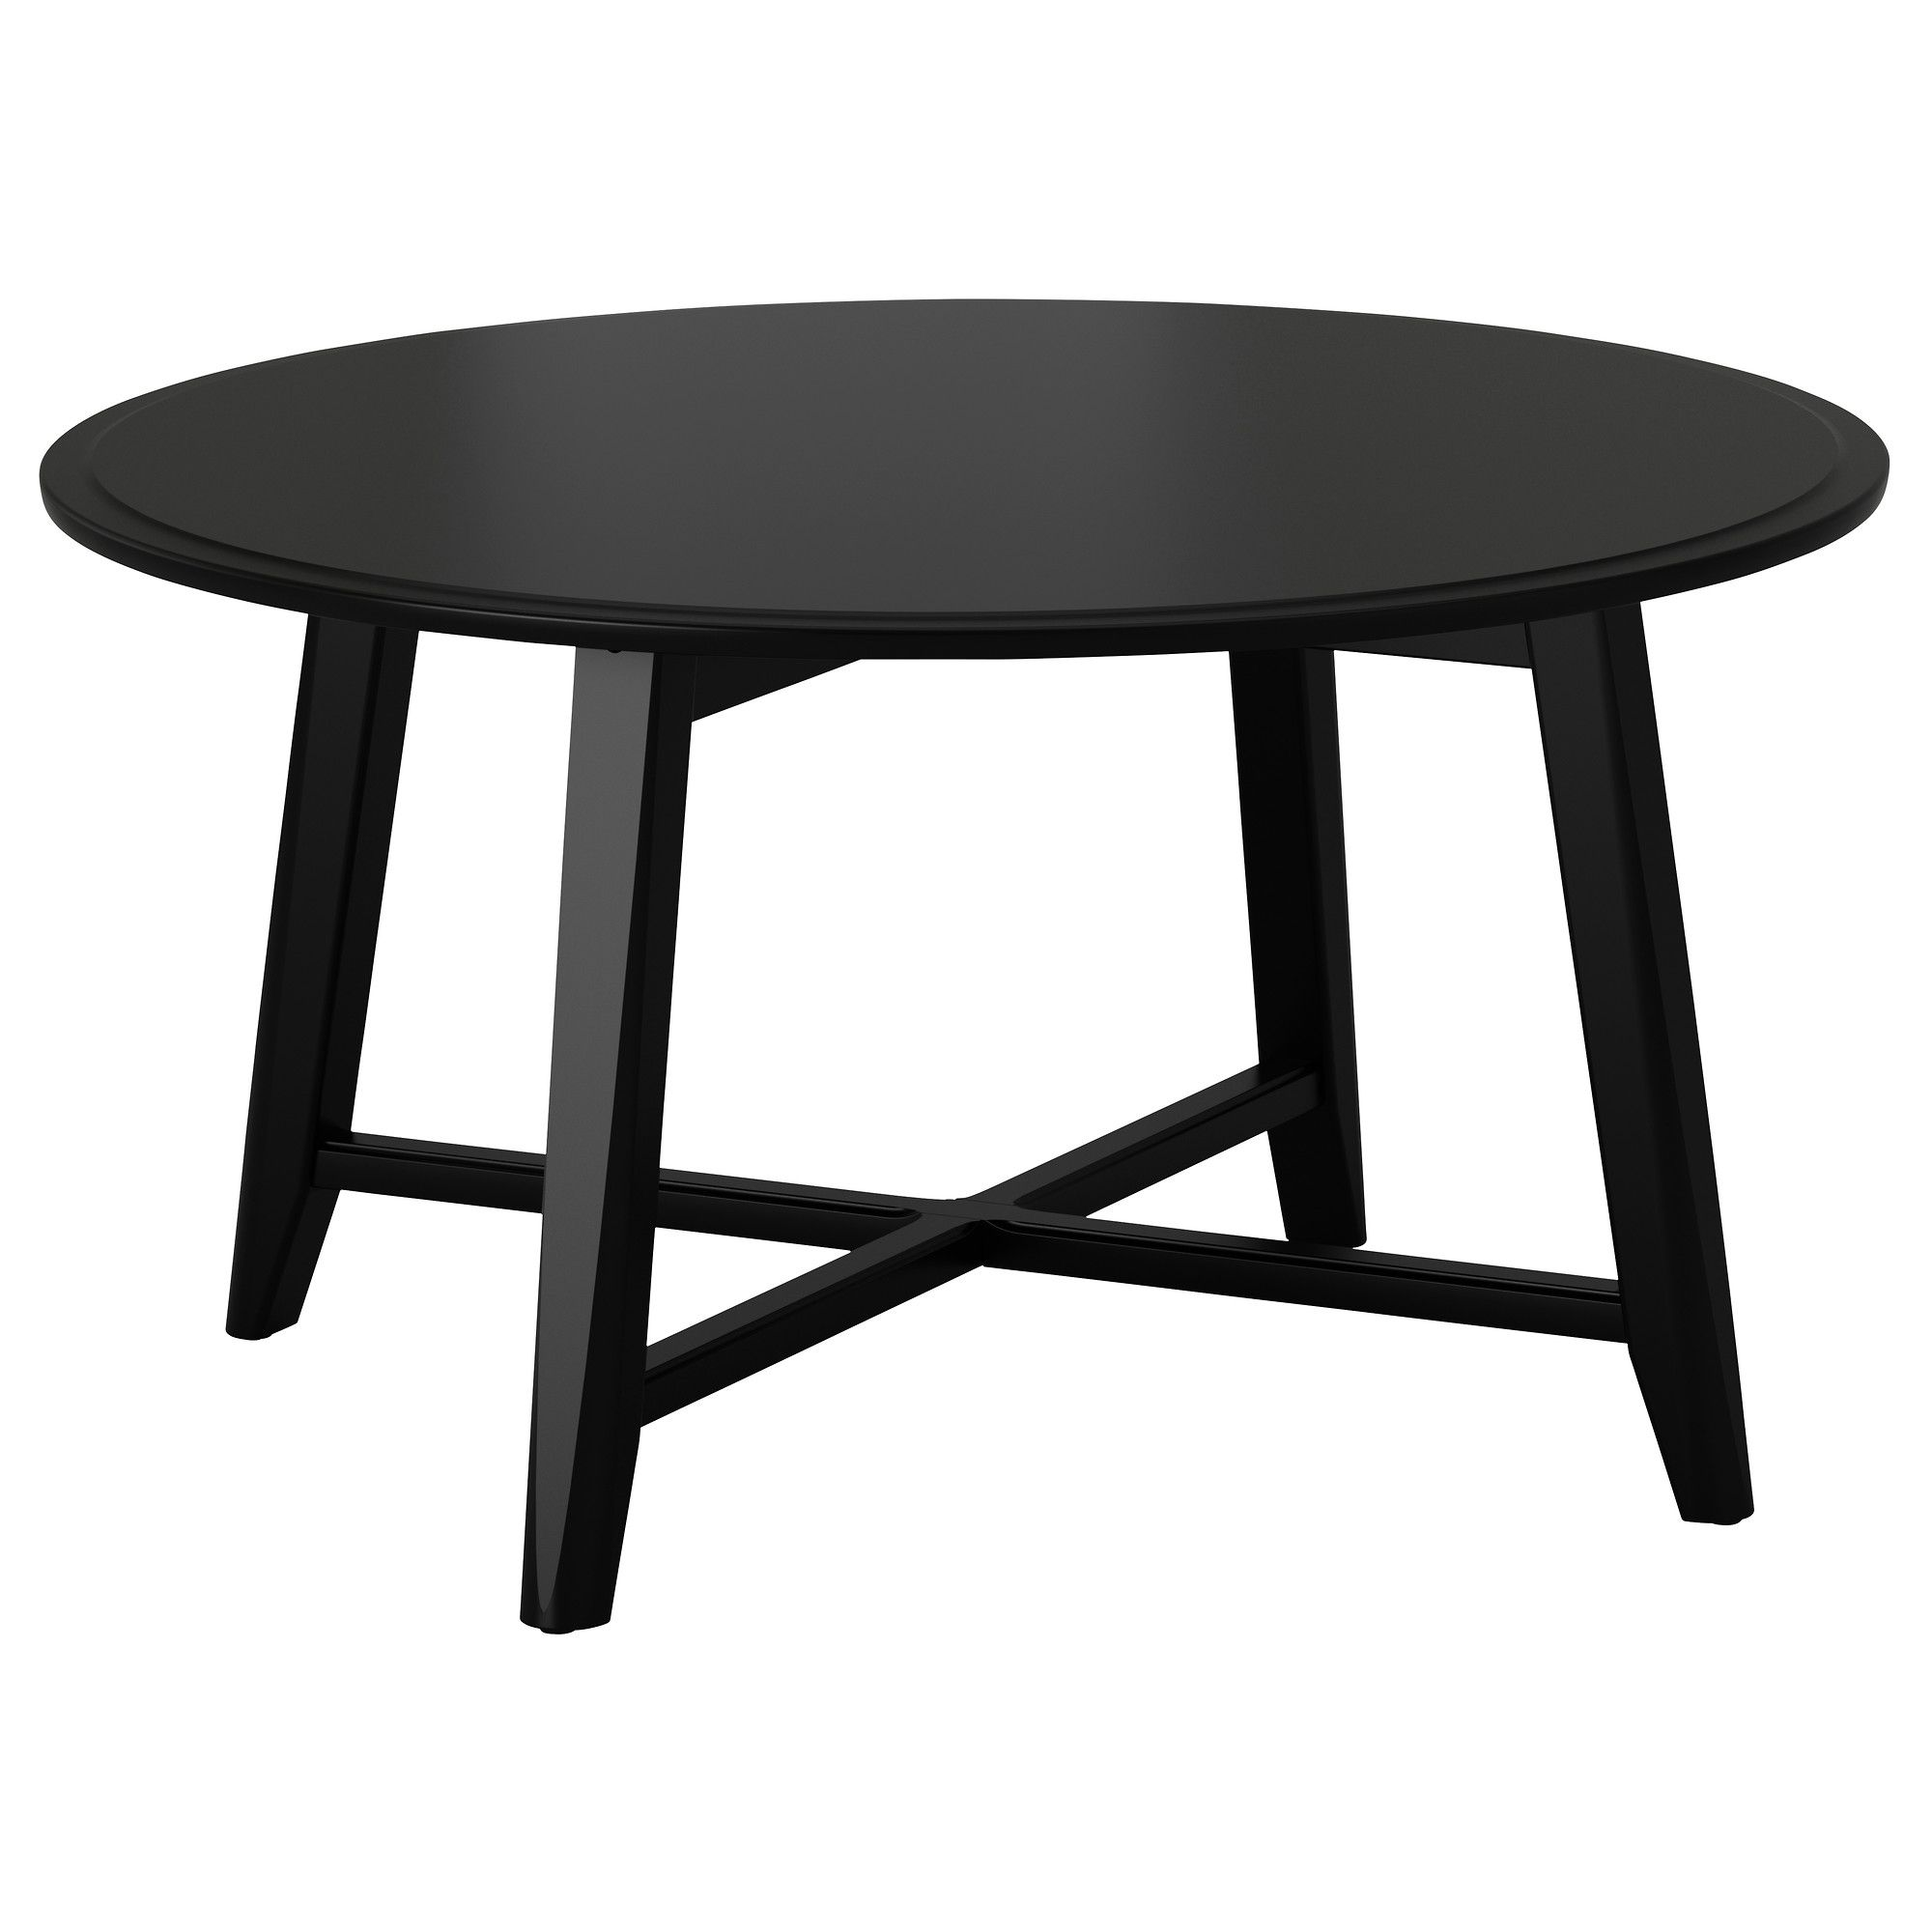 KRAGSTA Coffee table black IKEA Family Room